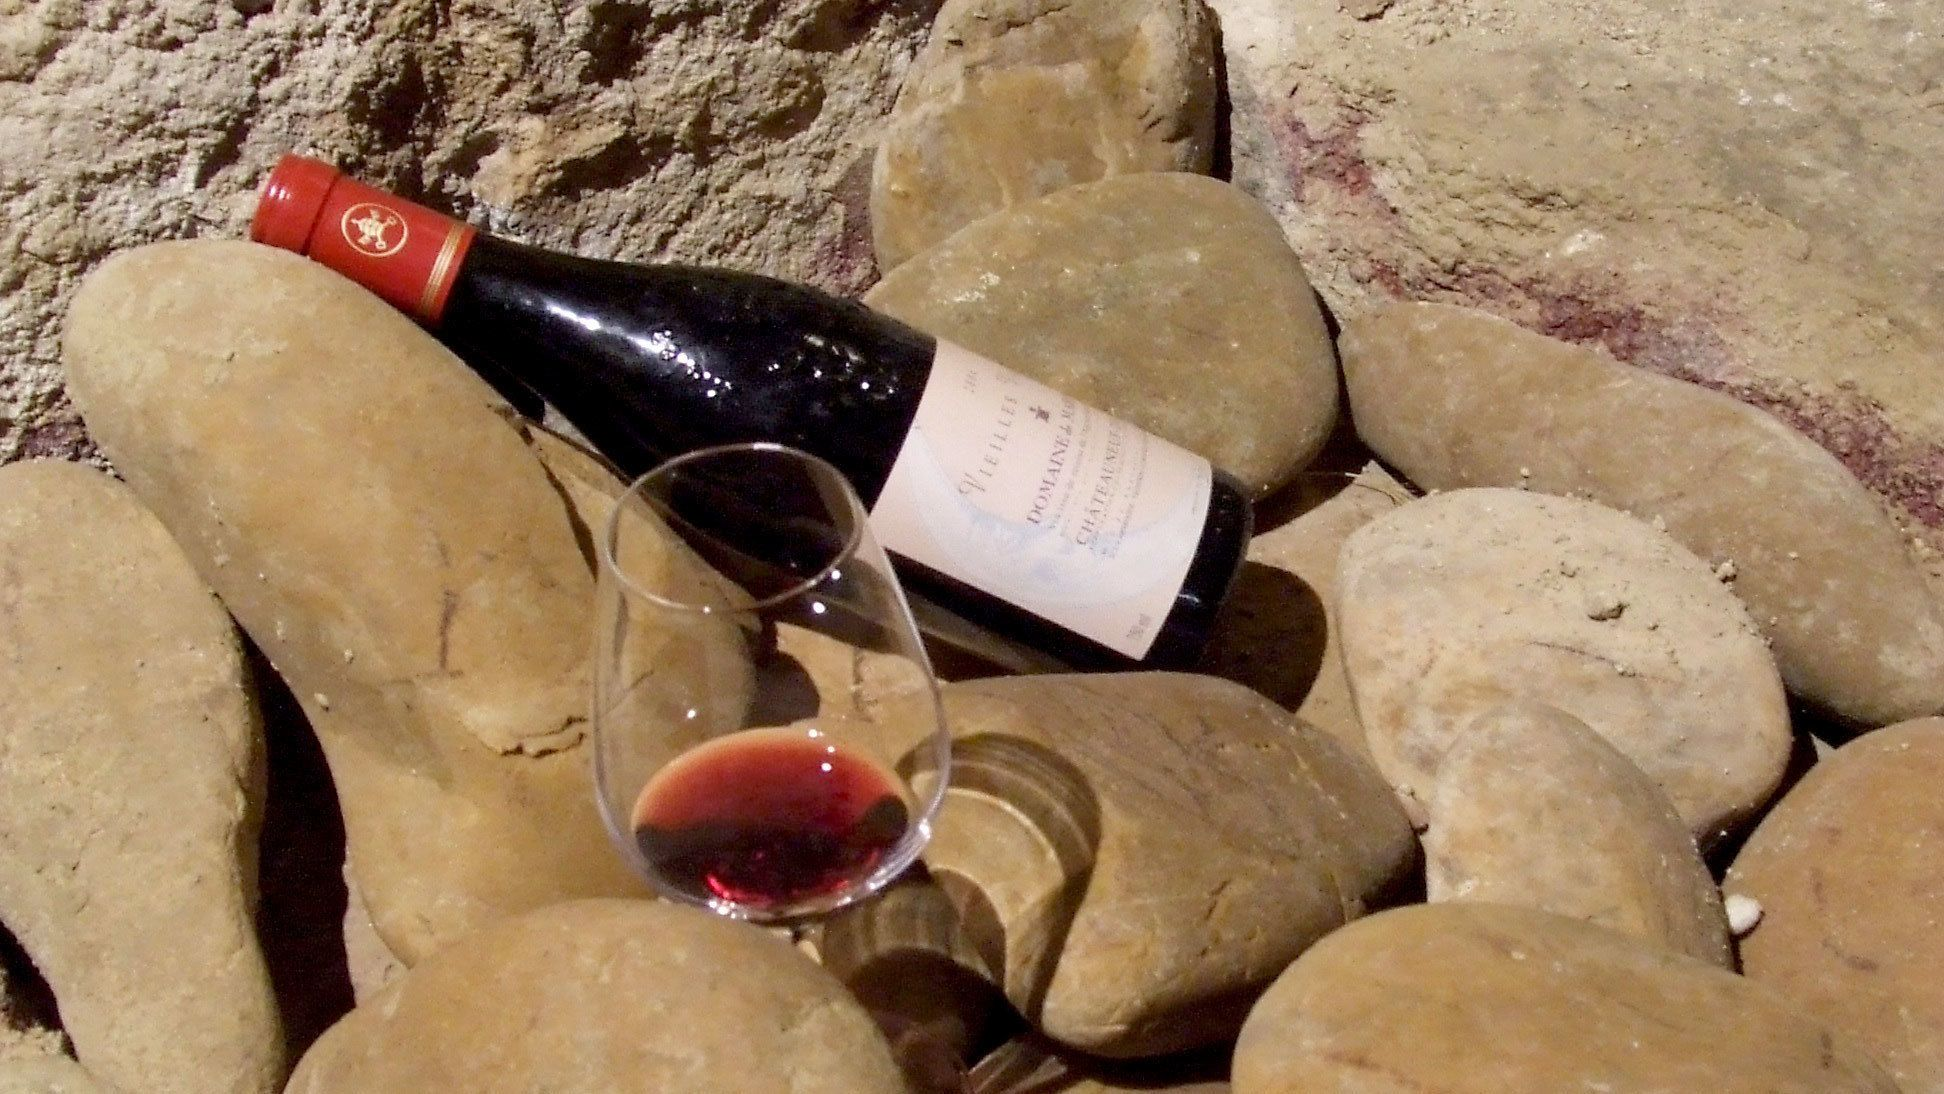 Bottle and glass of red wine on a rock in Rhone Valley